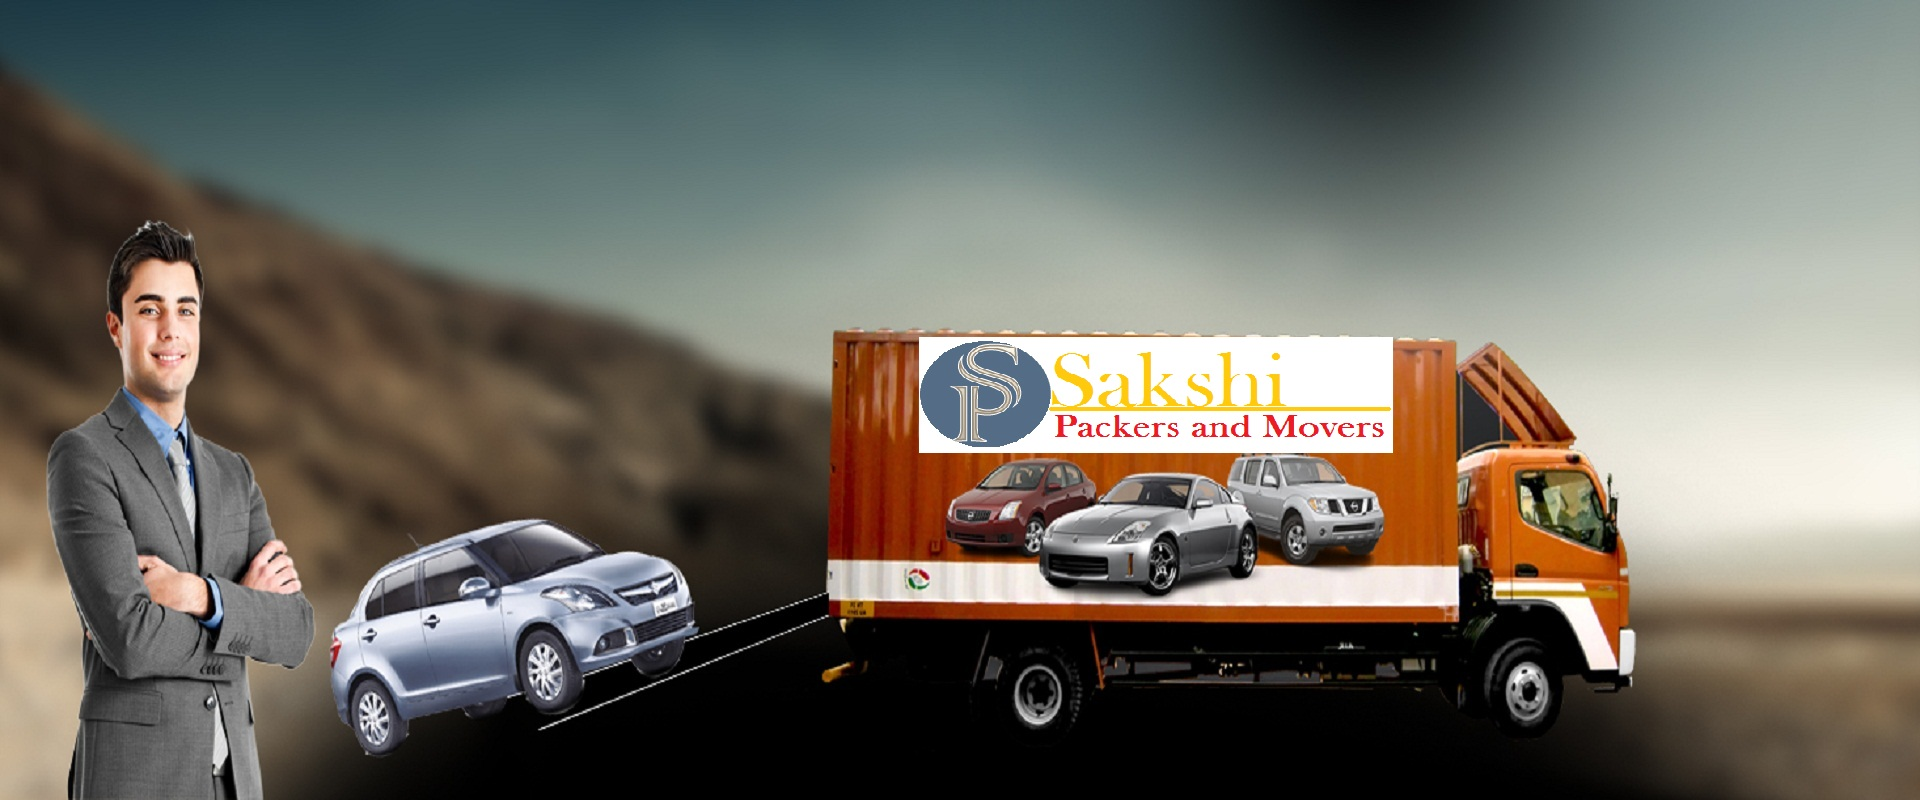 Packers and Movers Rajahmundry